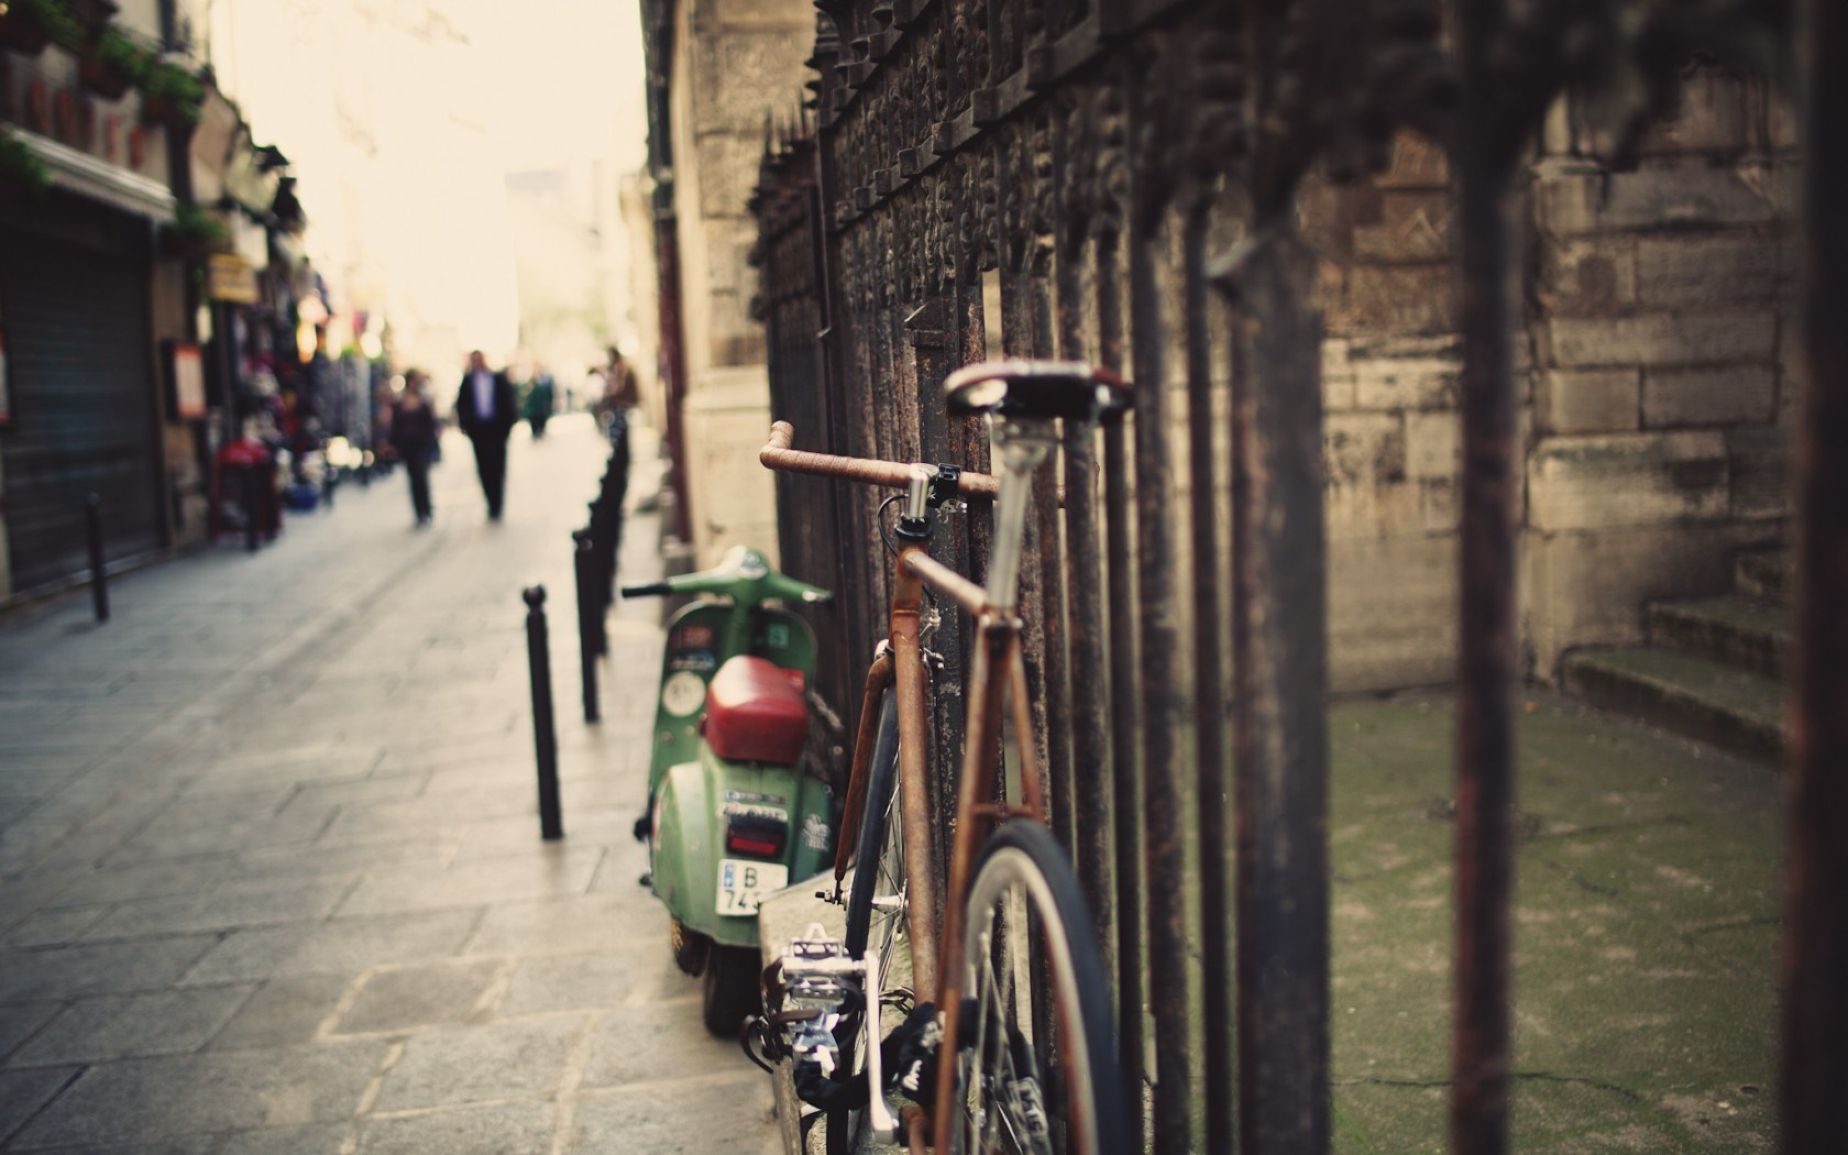 Download free HD Vintage City Photography Bicycle Wallpaper, image